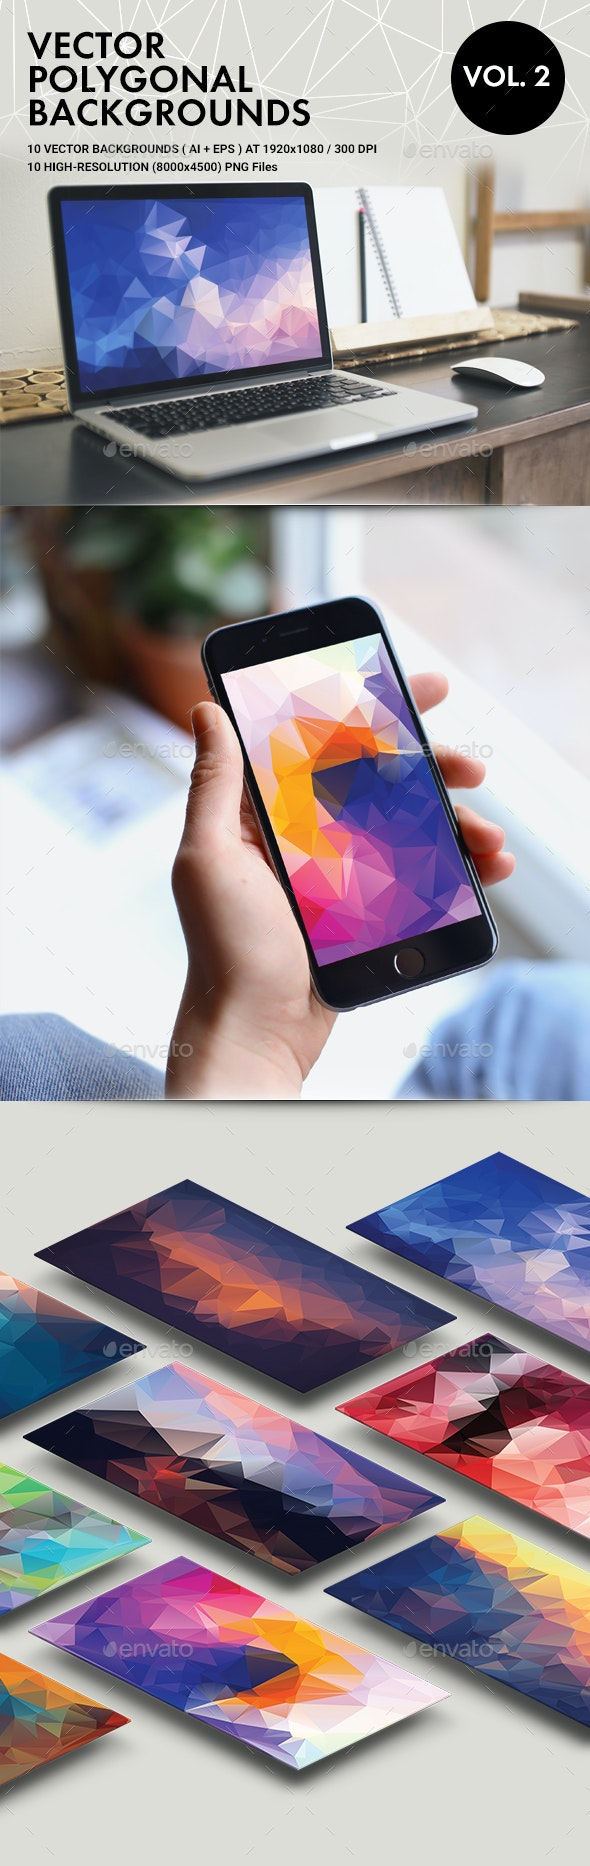 Vector Polygonal Backgrounds Vol. 2 - Abstract Backgrounds